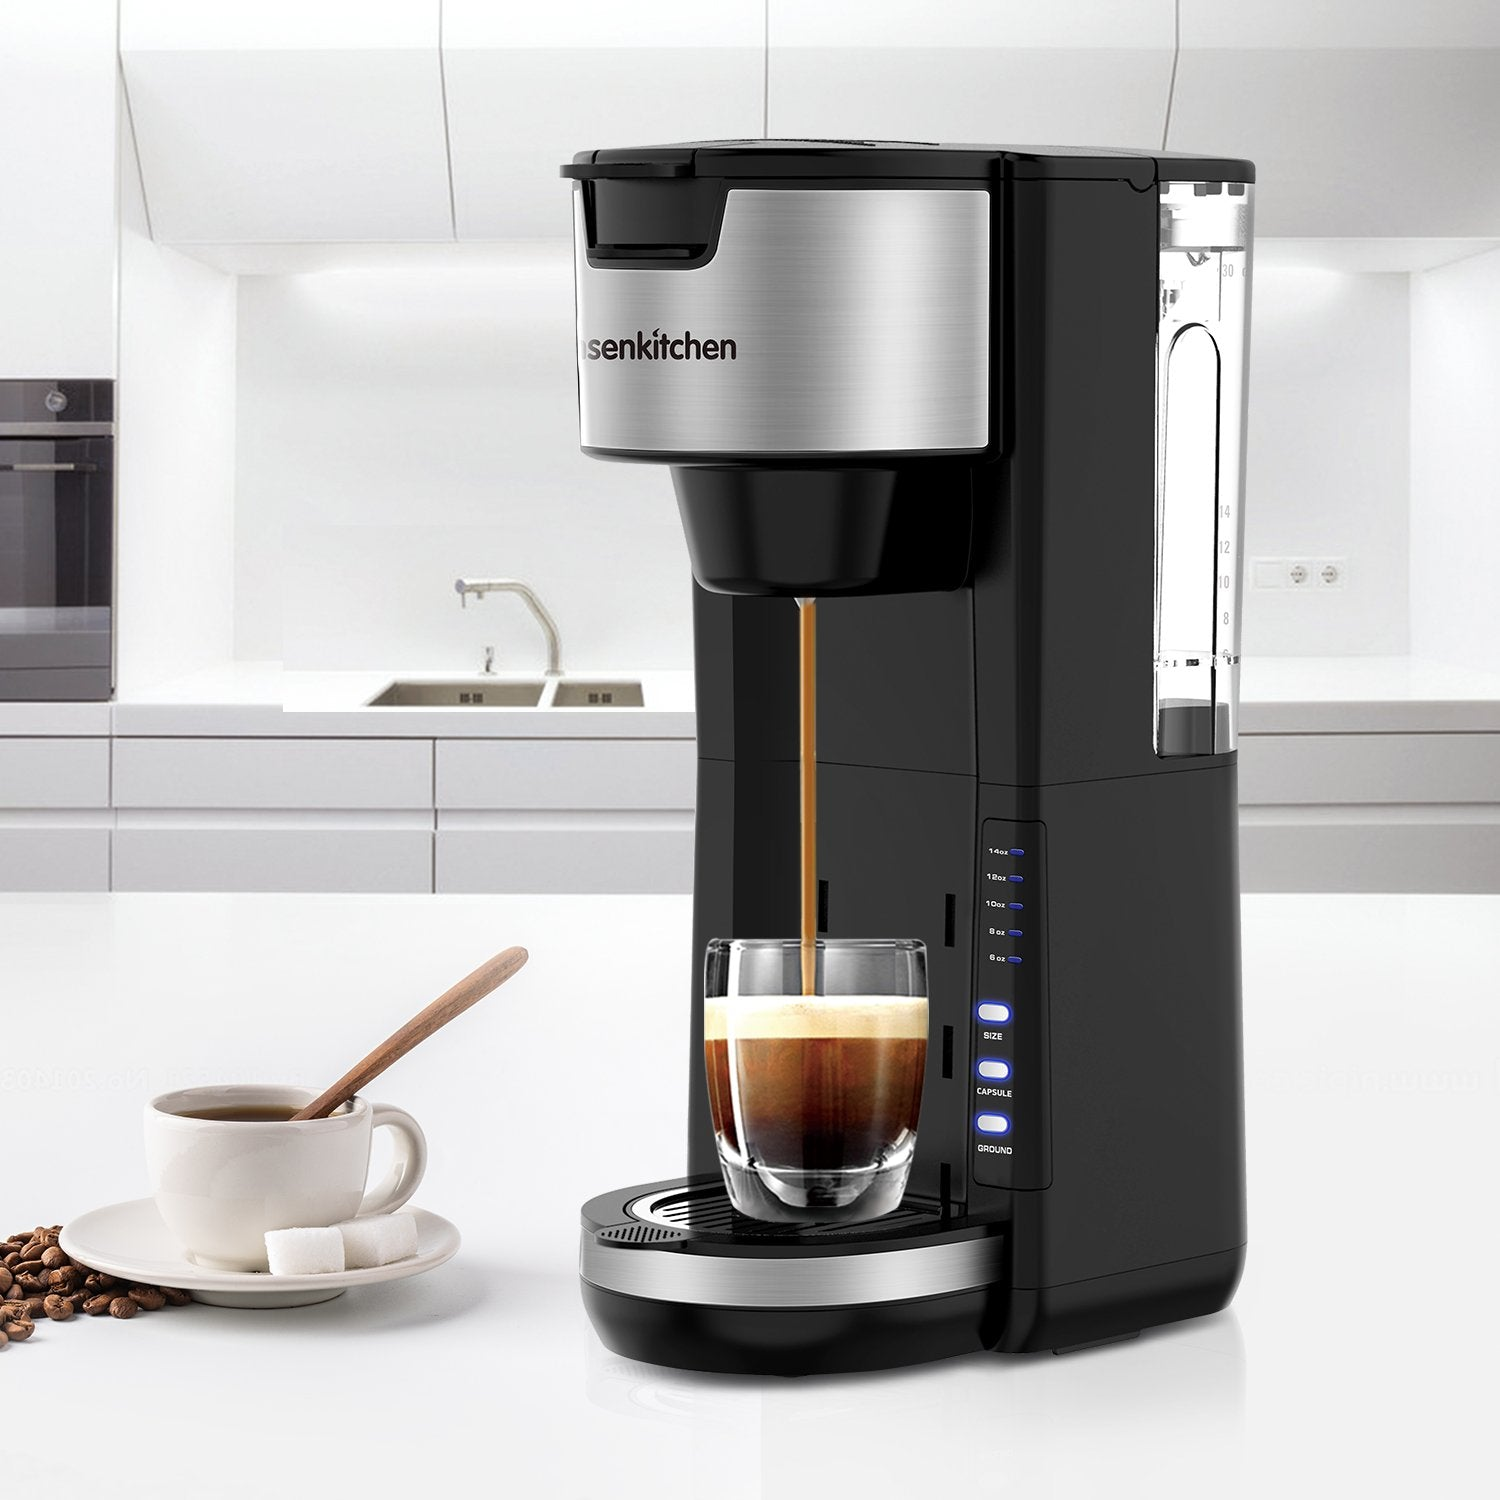 Bonsenkitchen 2 in 1 Compact and Durable K-Cup Coffee Maker - Bonsenkitchen